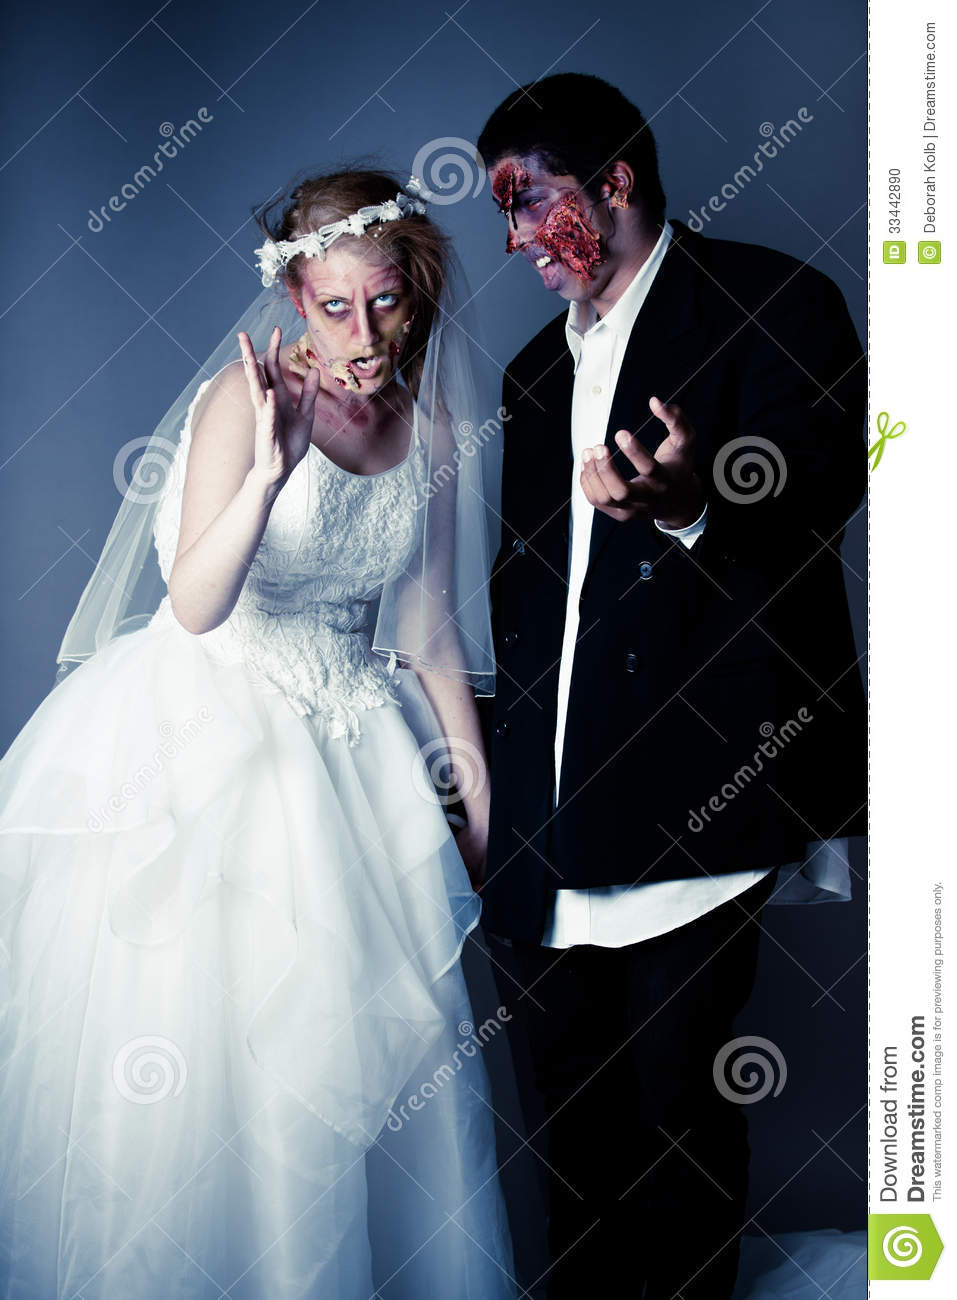 Wedding Day Zombie Bride And Groom Stock Photo  Image of book girl 33442890